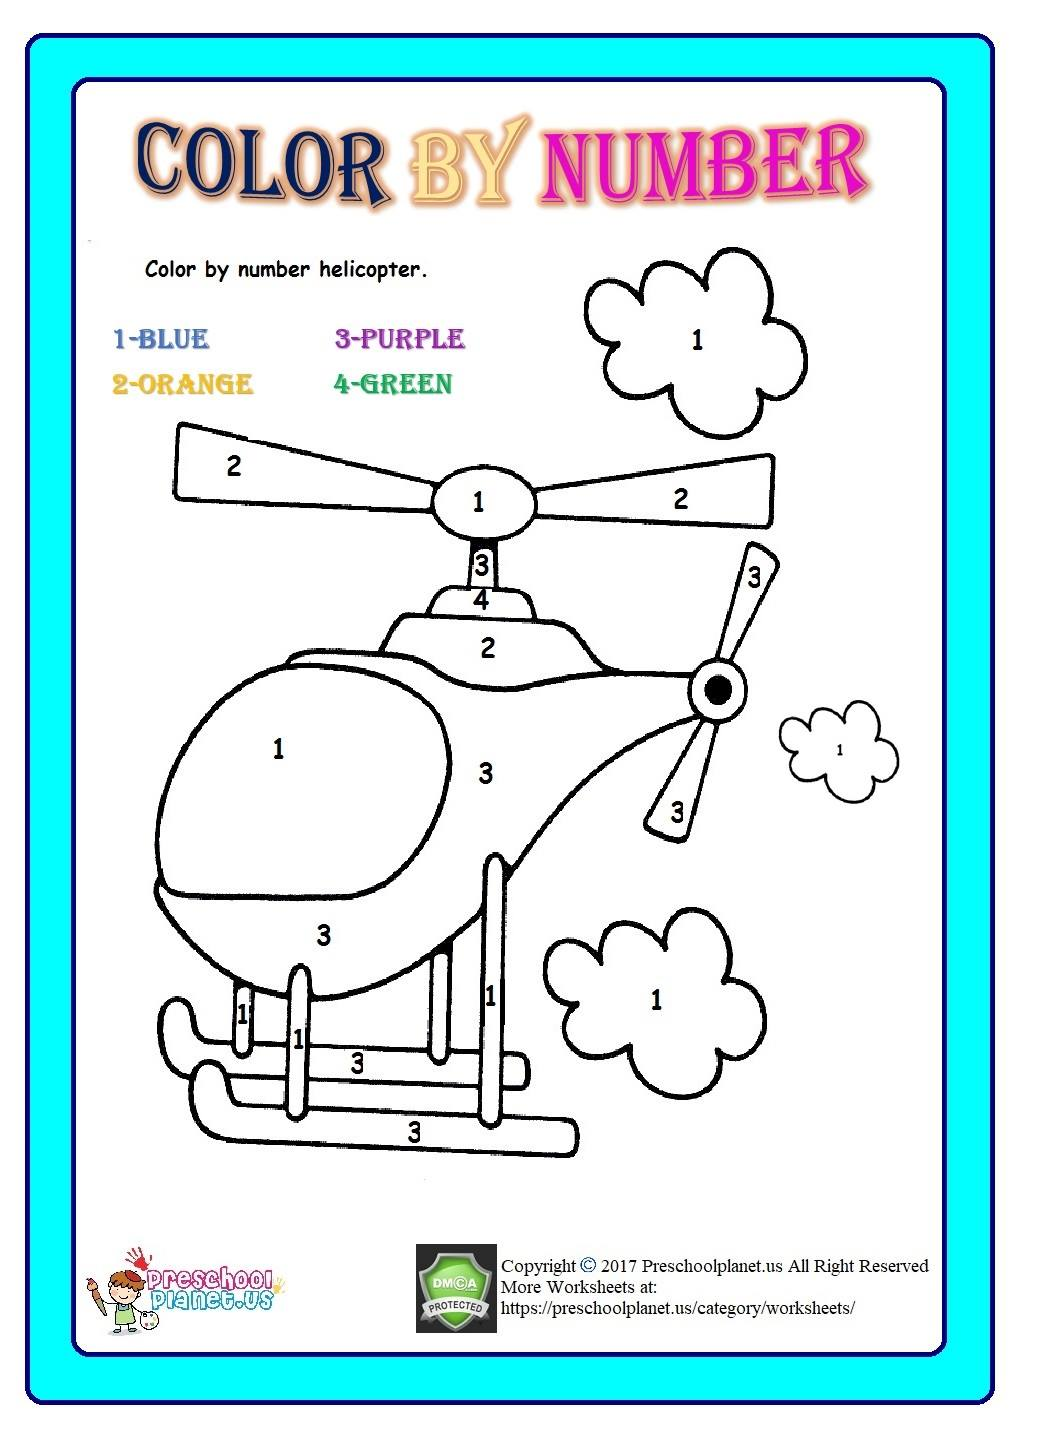 Number Hunt Worksheet For Kids Preschoolplanet